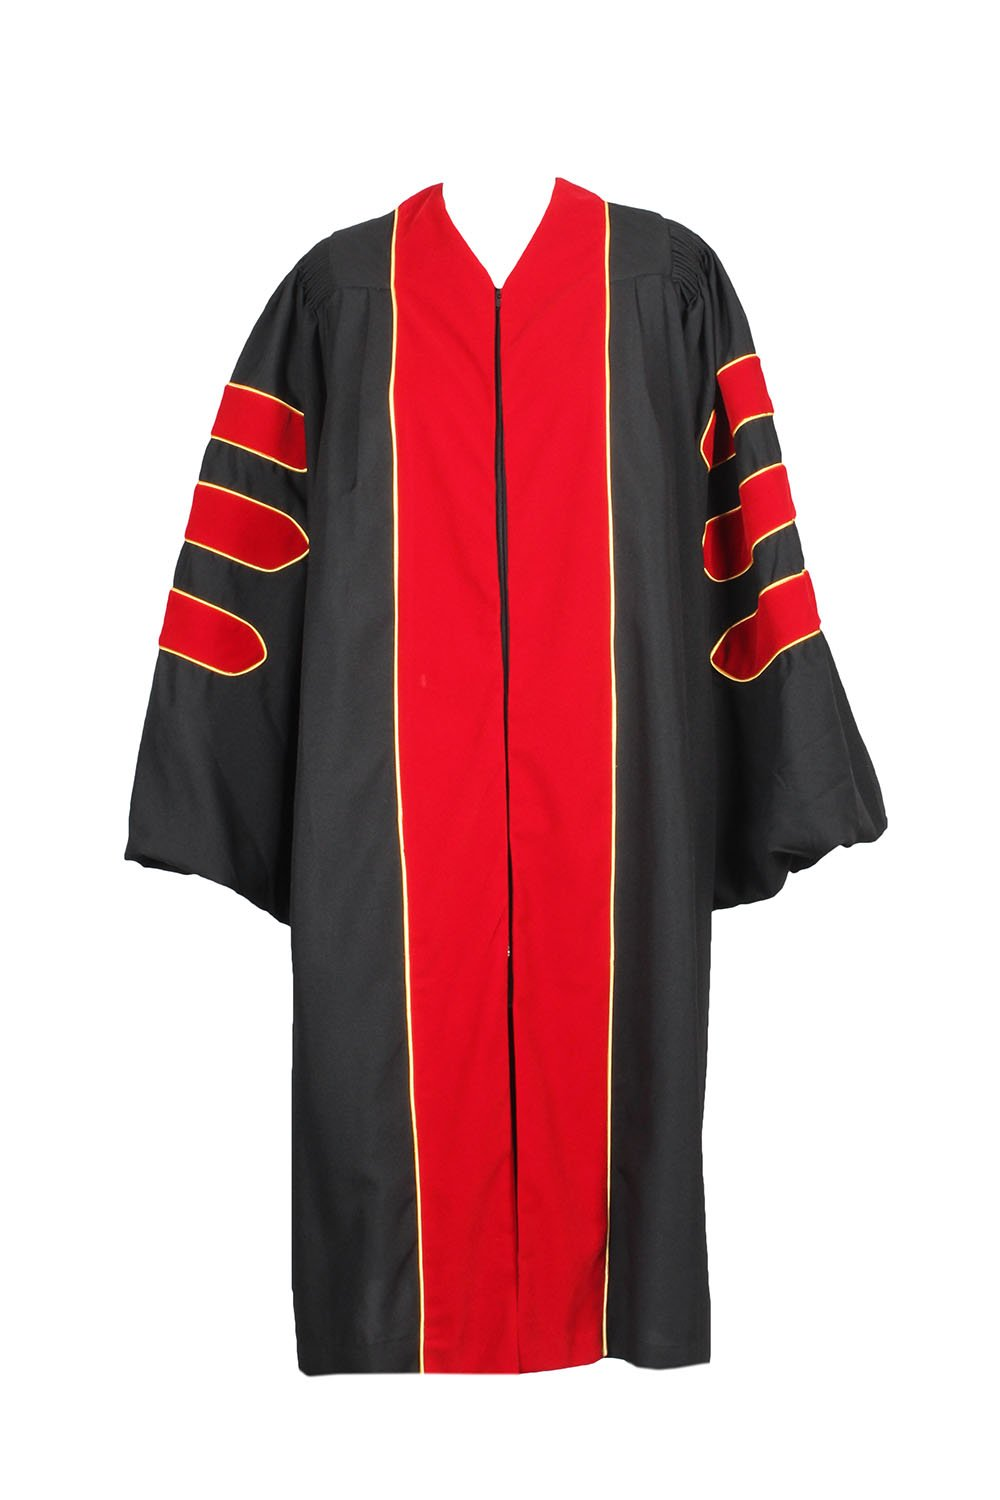 Gradplaza Unisex Deluxe Doctoral Graduation Gown With Velvet And Gold Piping